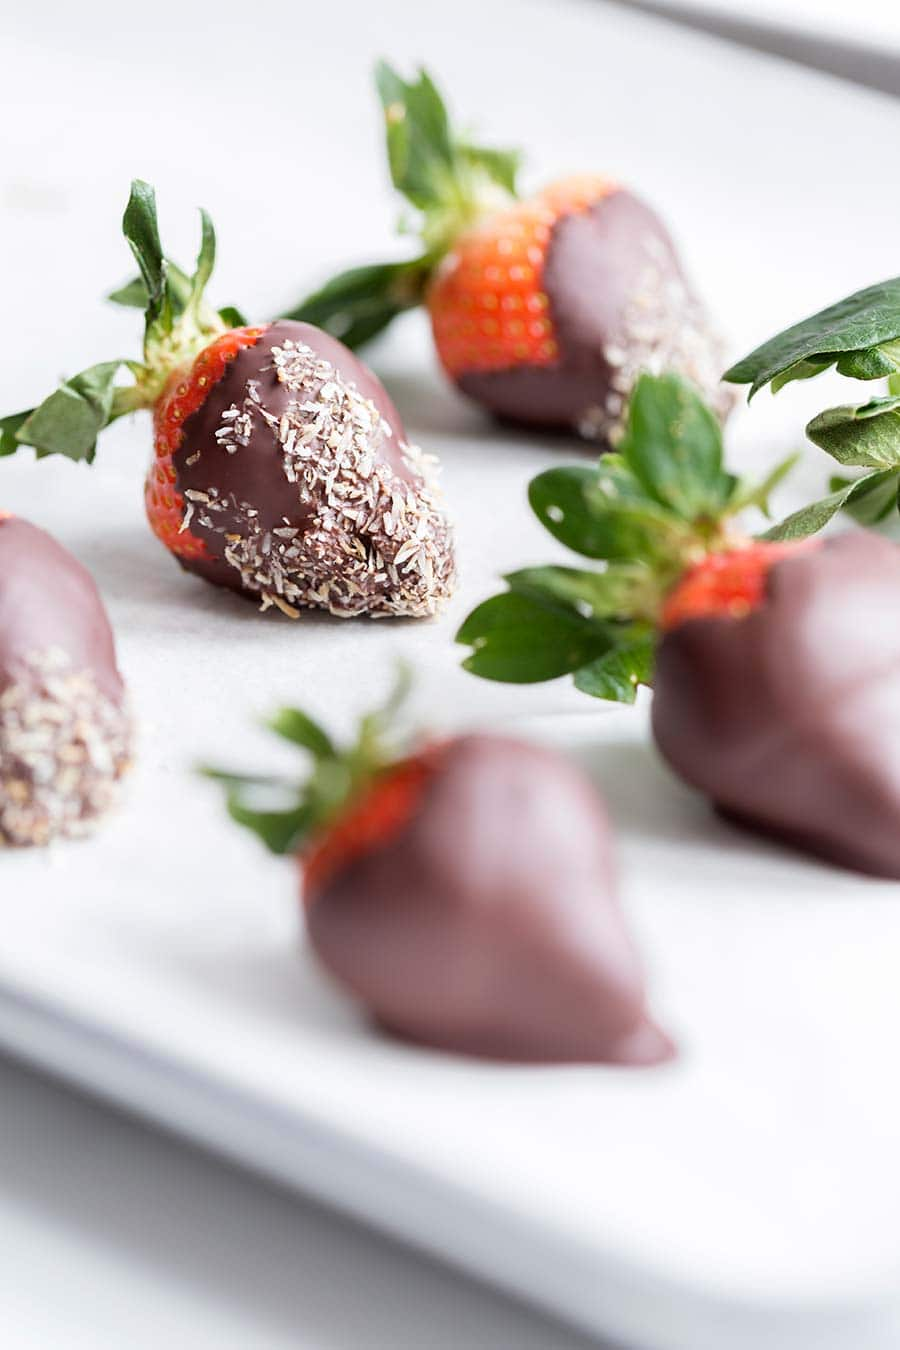 A photo of chocolate strawberries coated in toasted coconut.